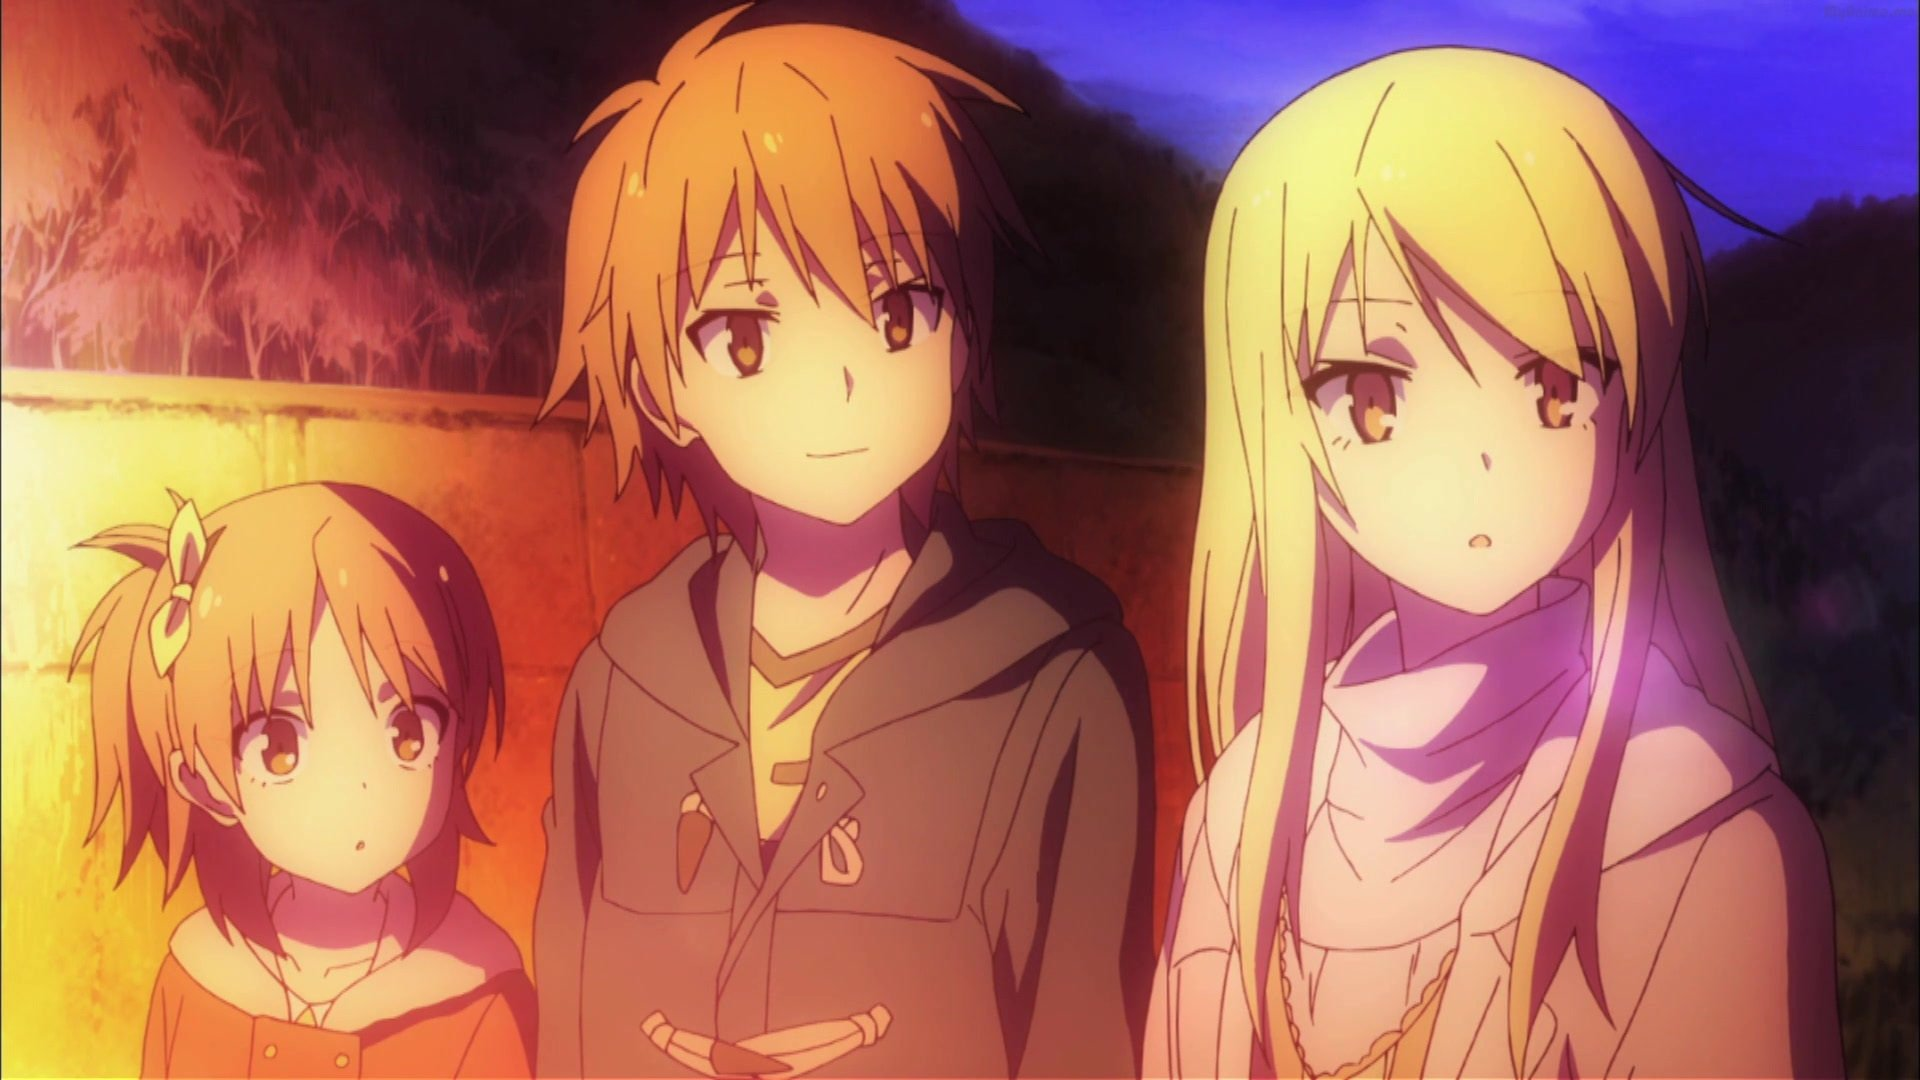 Sakurasou-no-Pet-na-Kanojo-episode-15-screenshot-063.jpg